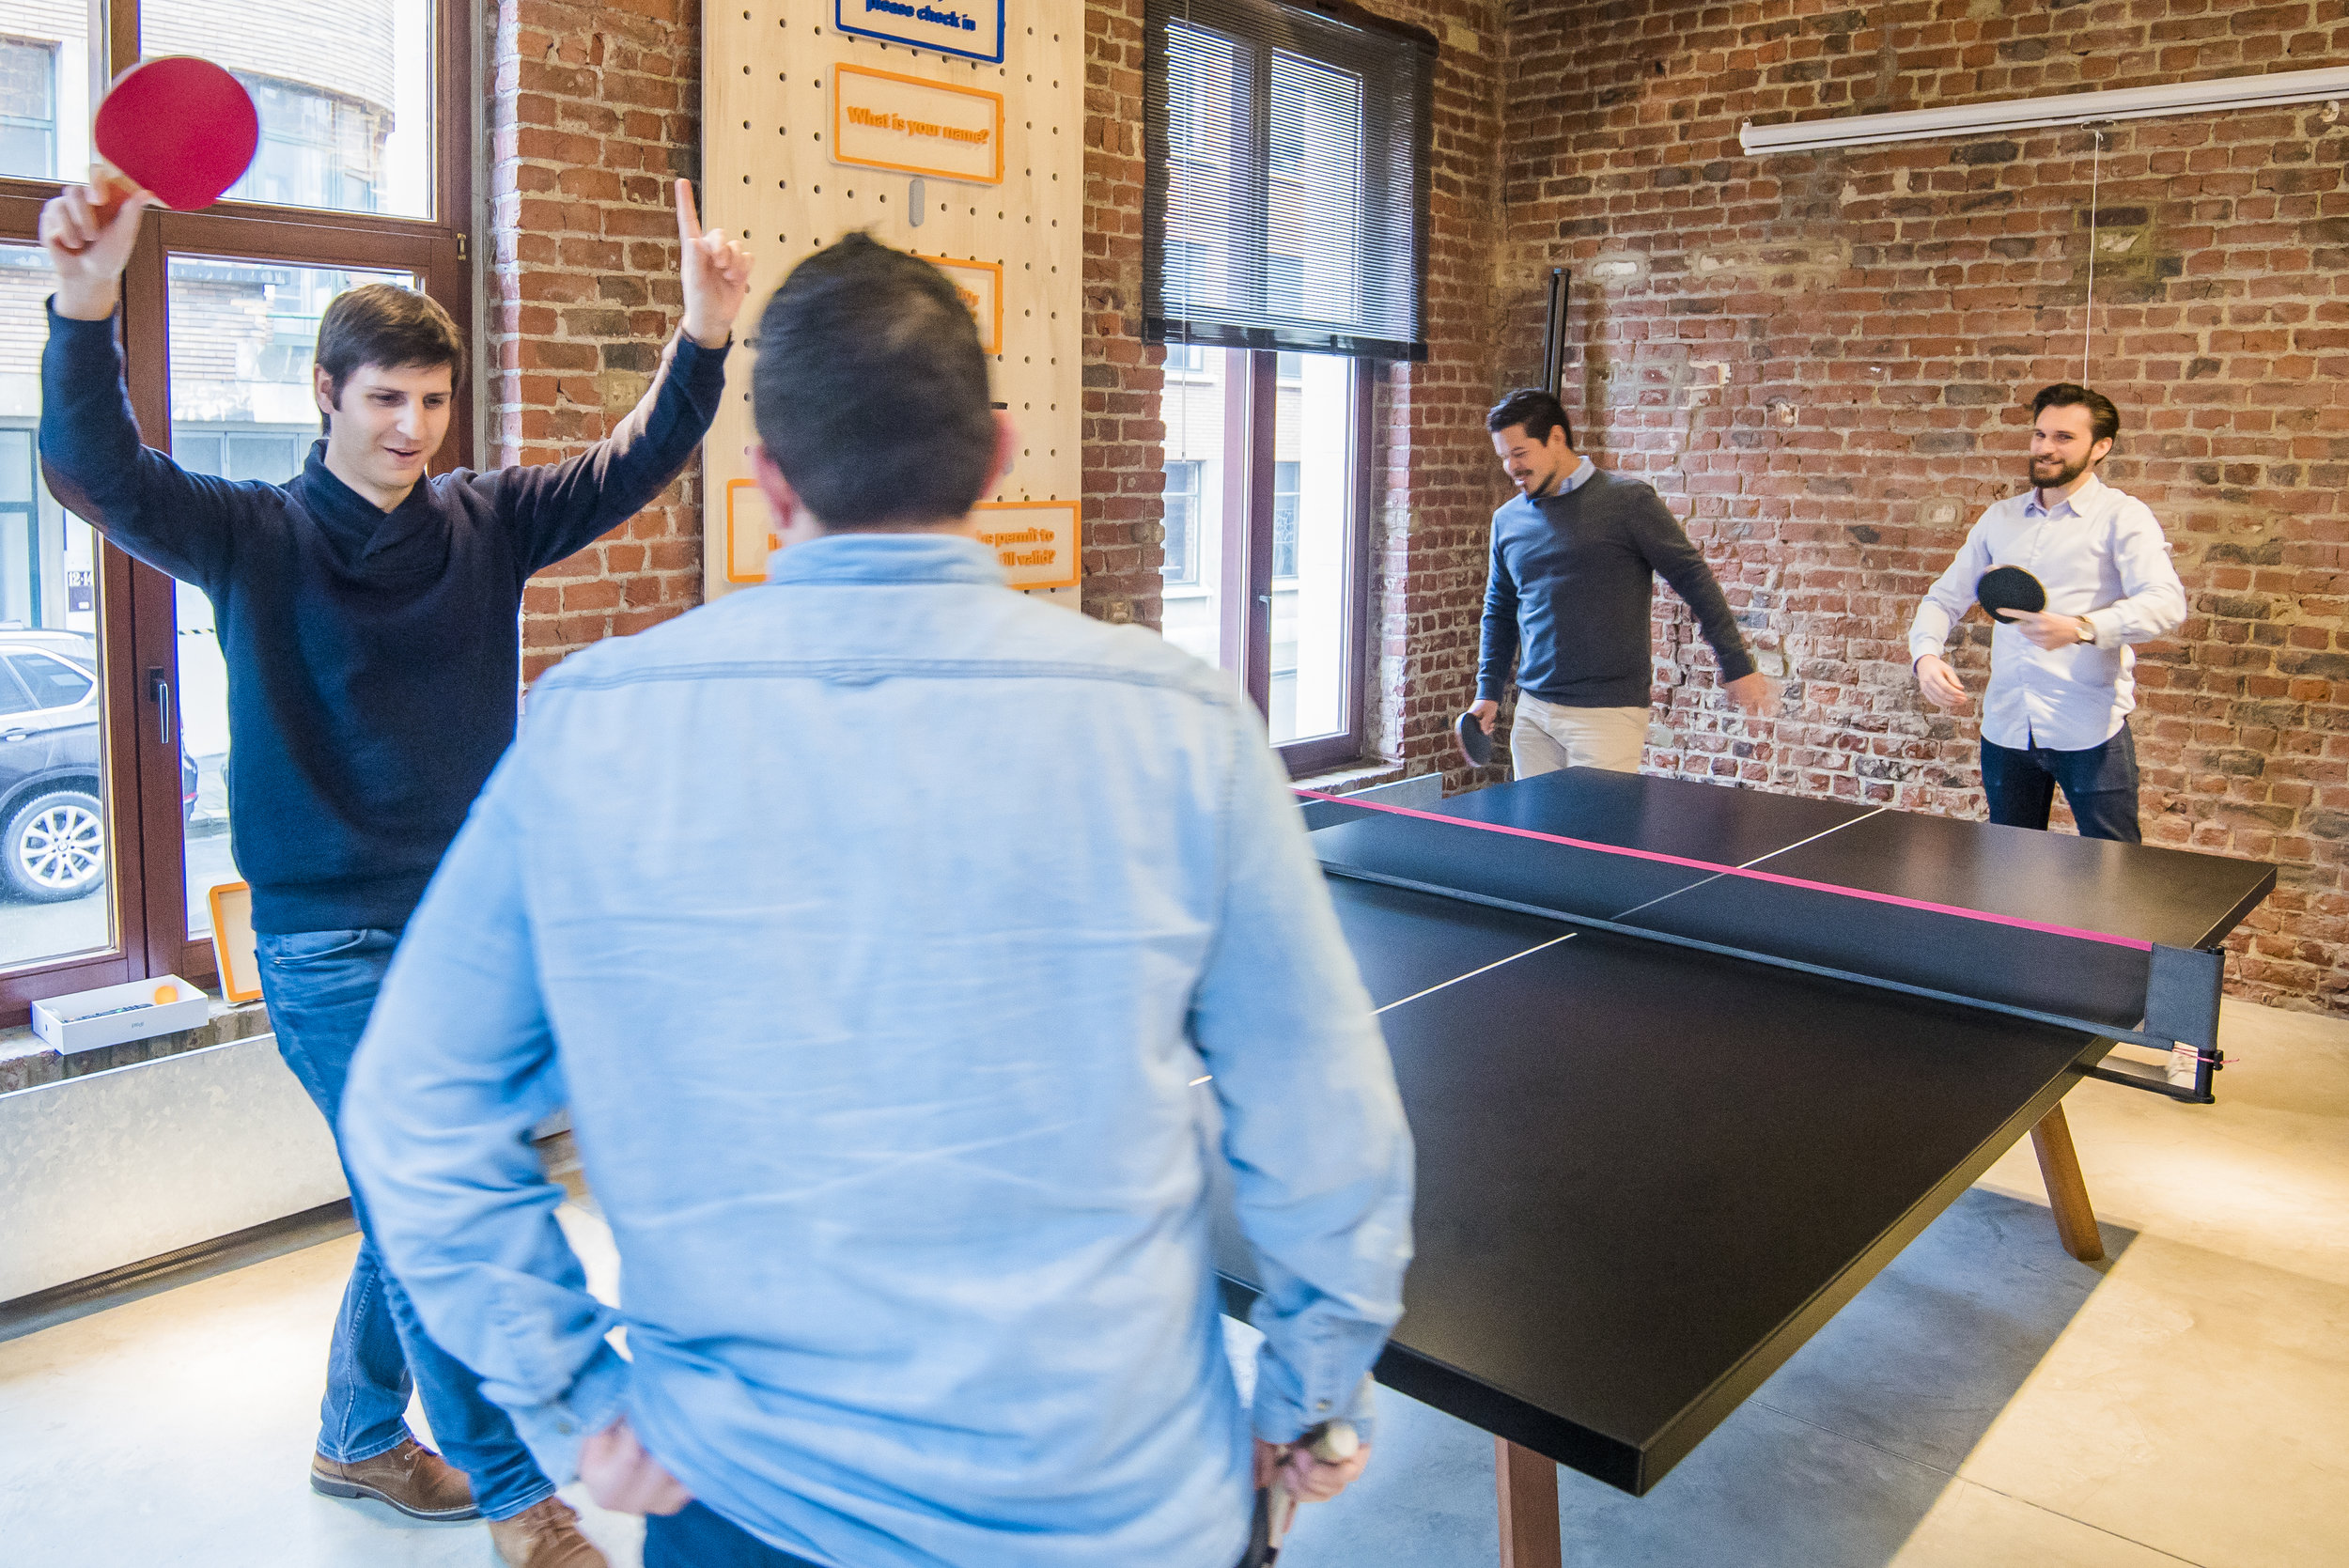 Make communal areas comfortable, like adding a ping pong table for your team to come together beyond the cubicle or boardroom.